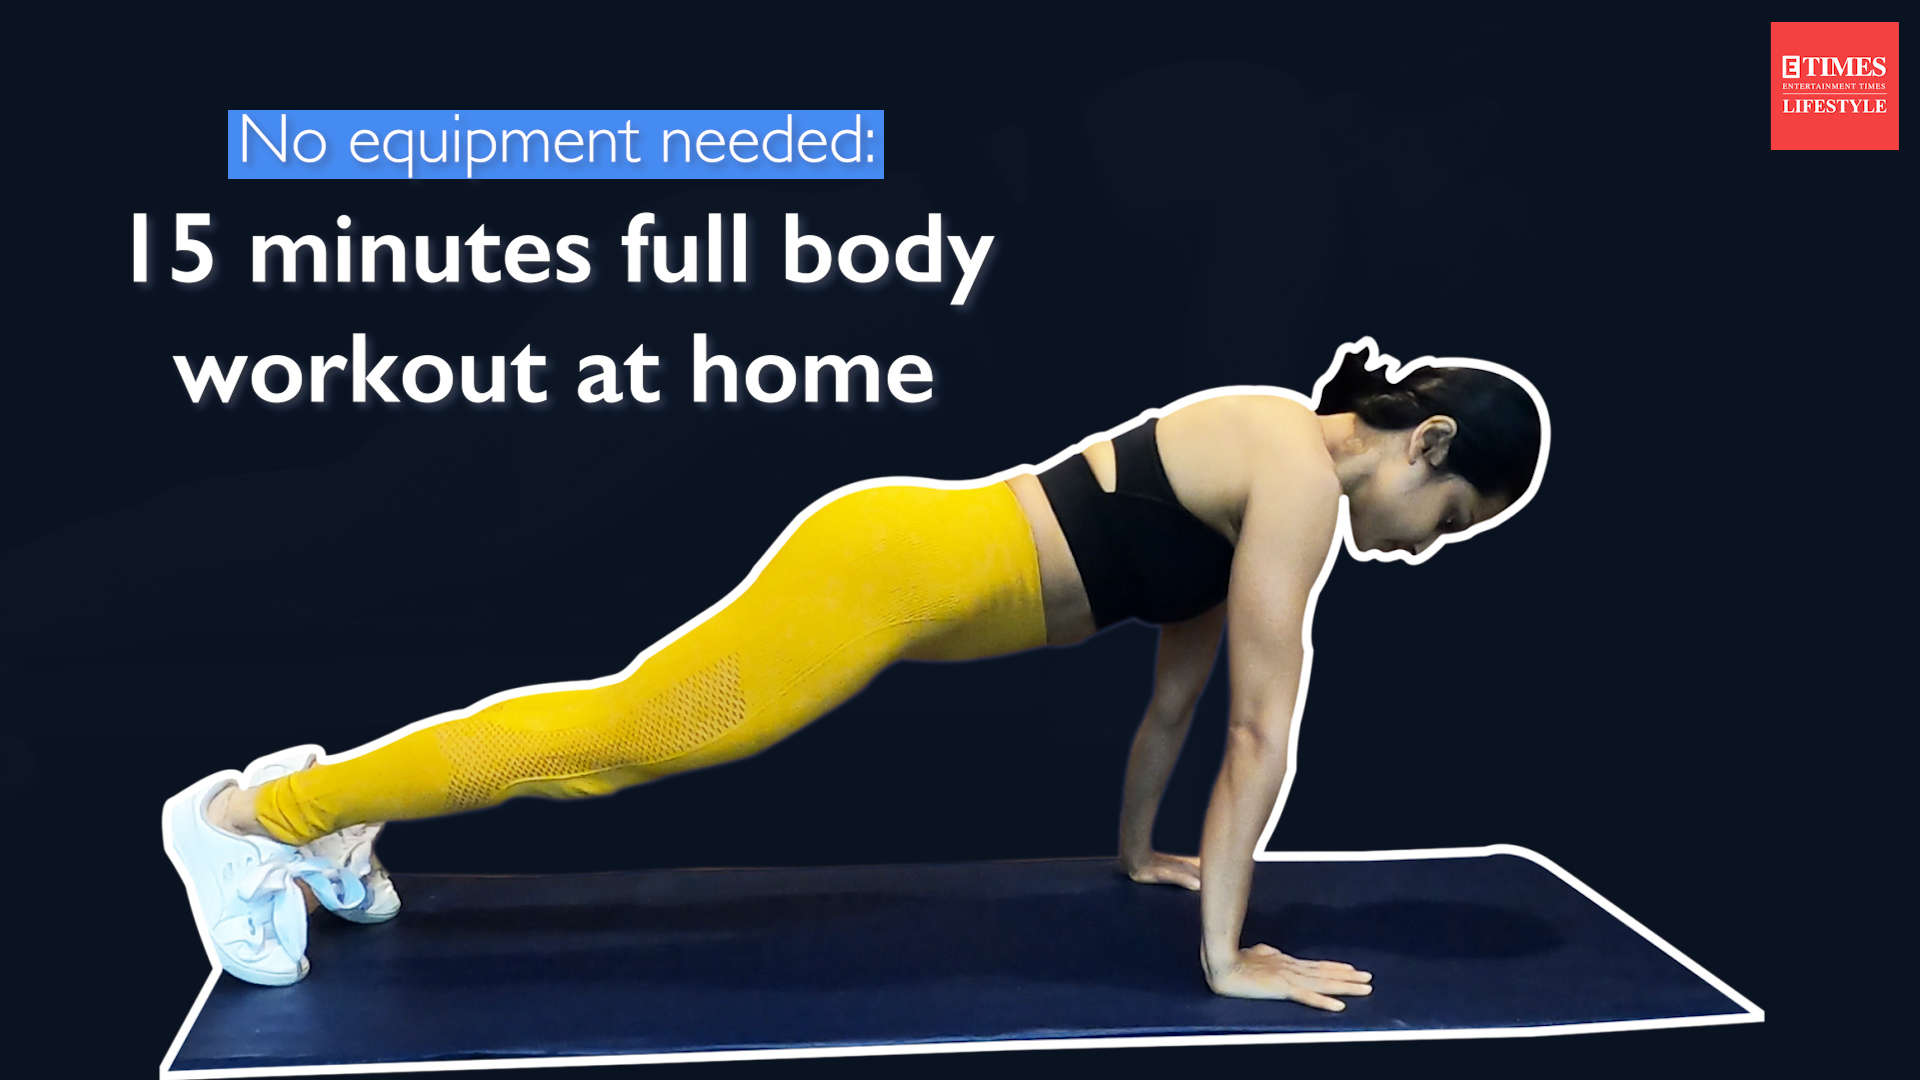 no-equipment-needed-15-minutes-full-body-workout-at-home